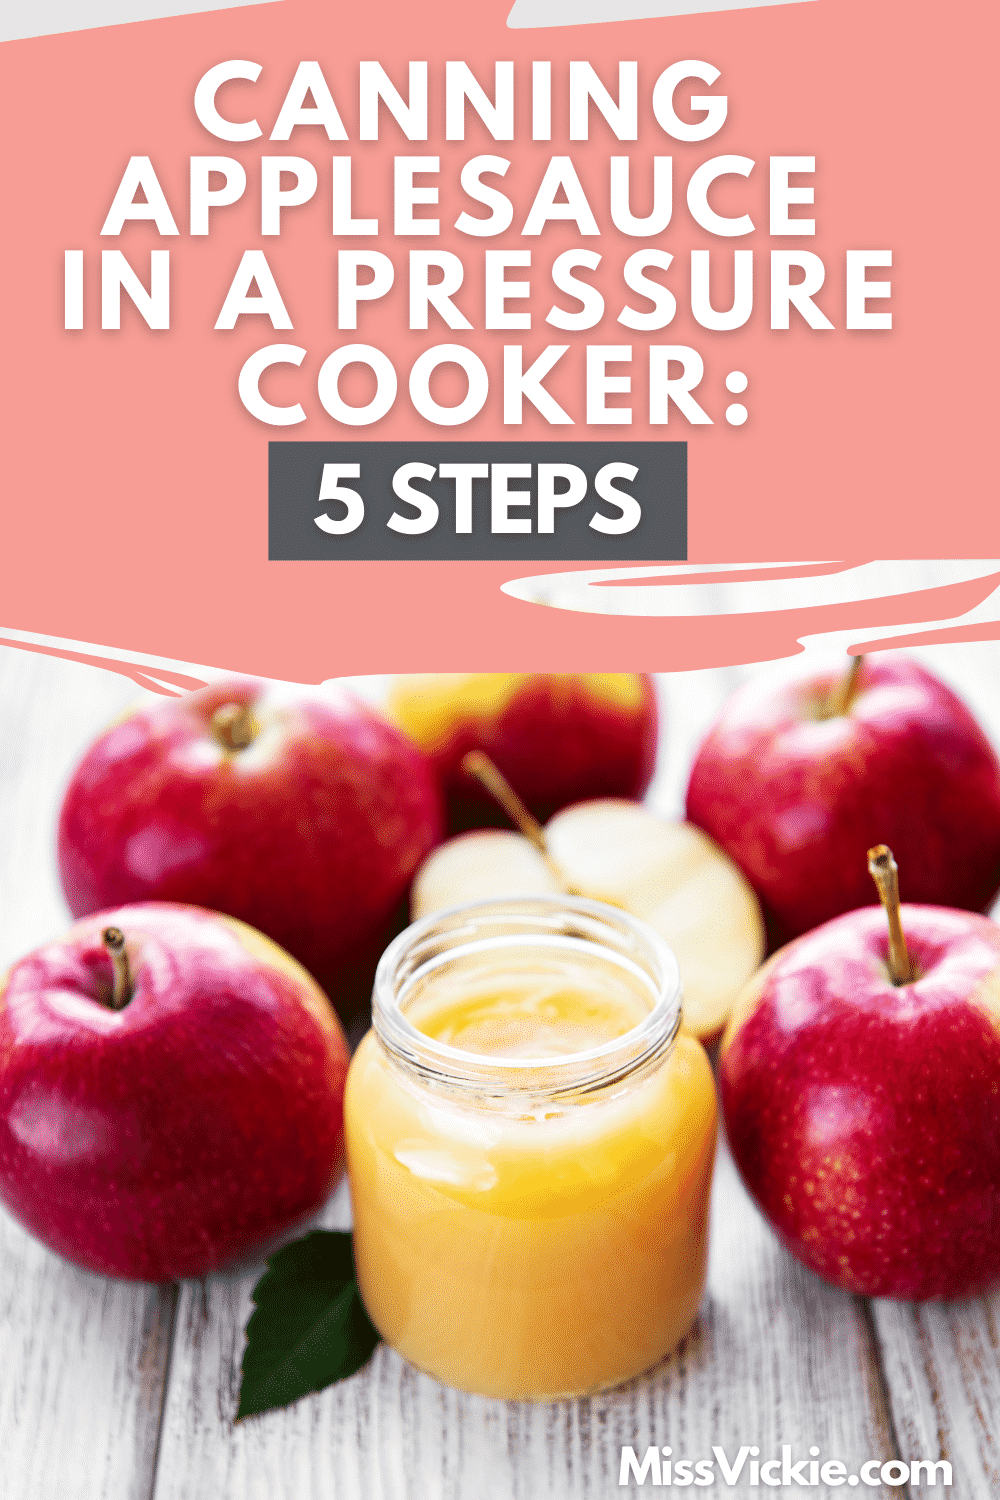 Canning Applesauce Pressure Cooker